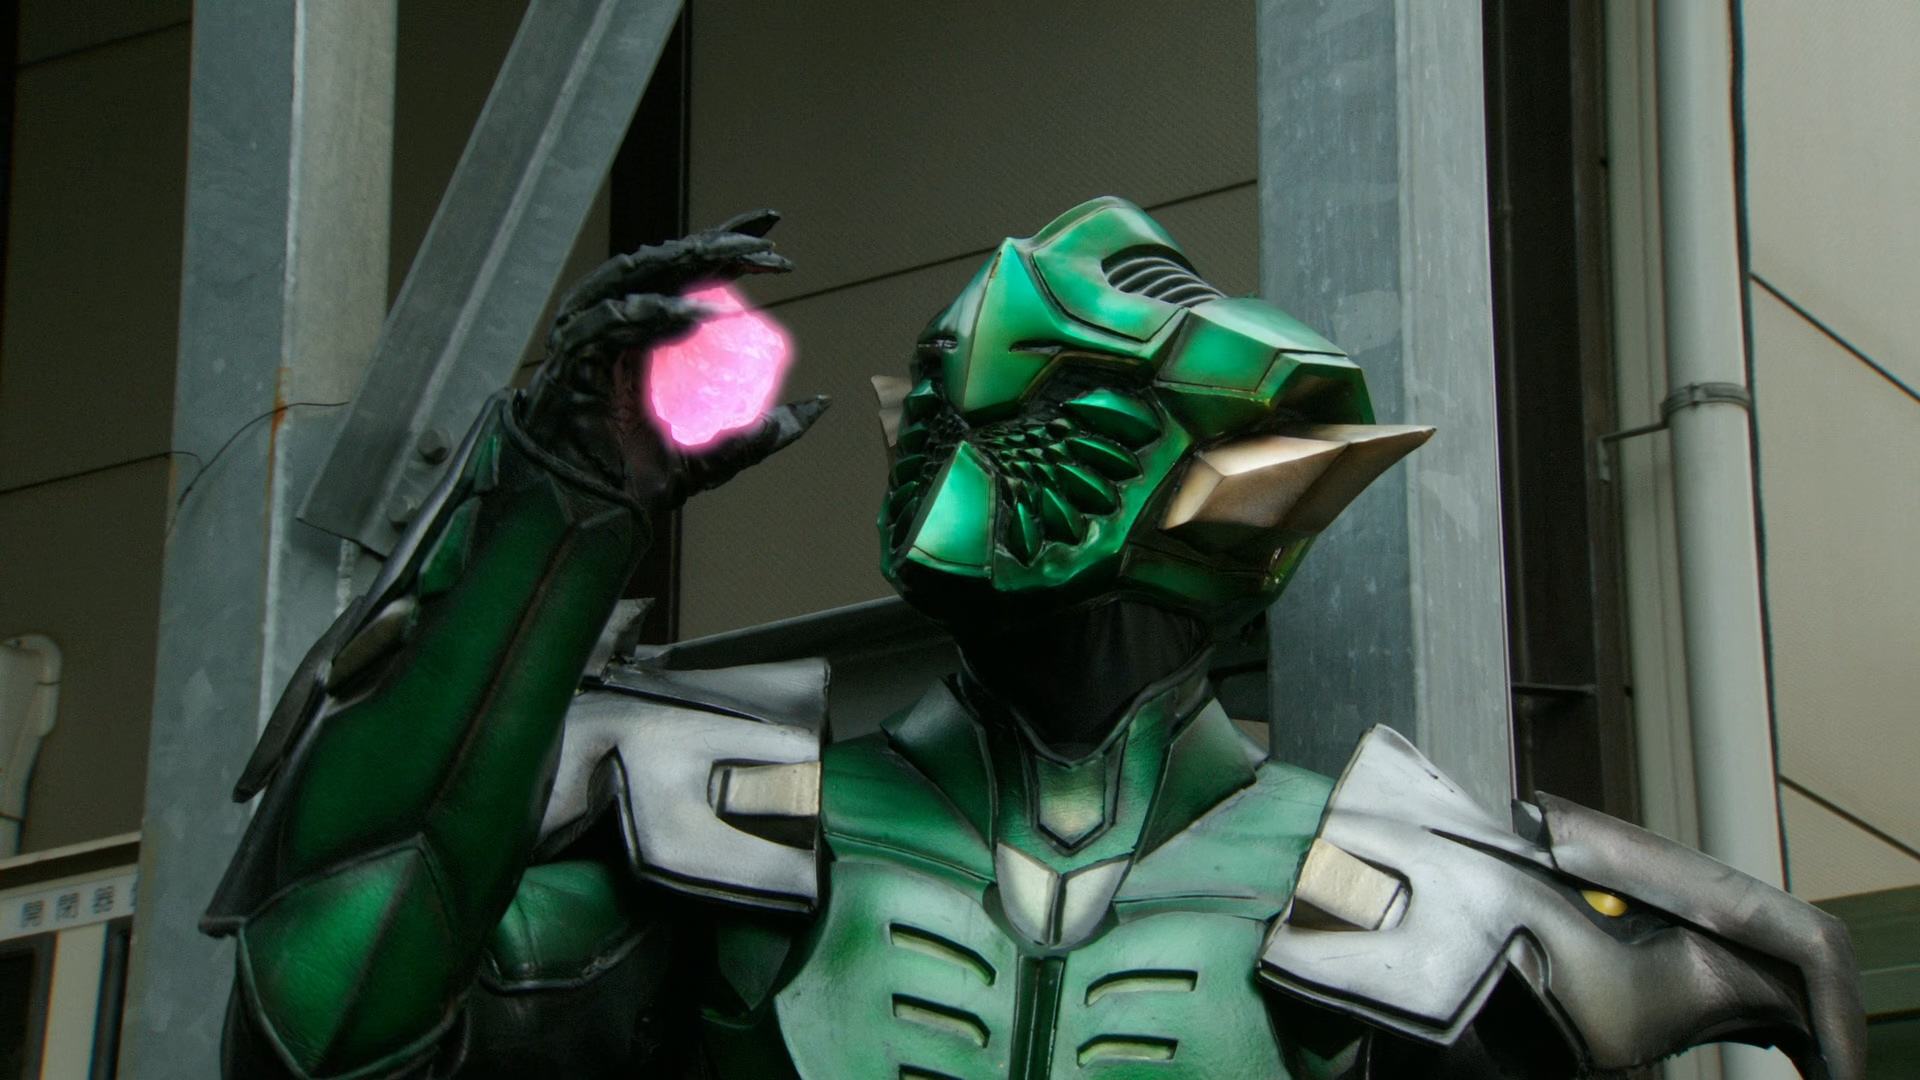 http://static1.wikia.nocookie.net/__cb20130908054711/kamenrider/images/9/9a/Gremlin_with_Philosopher%27s_Stone.jpg